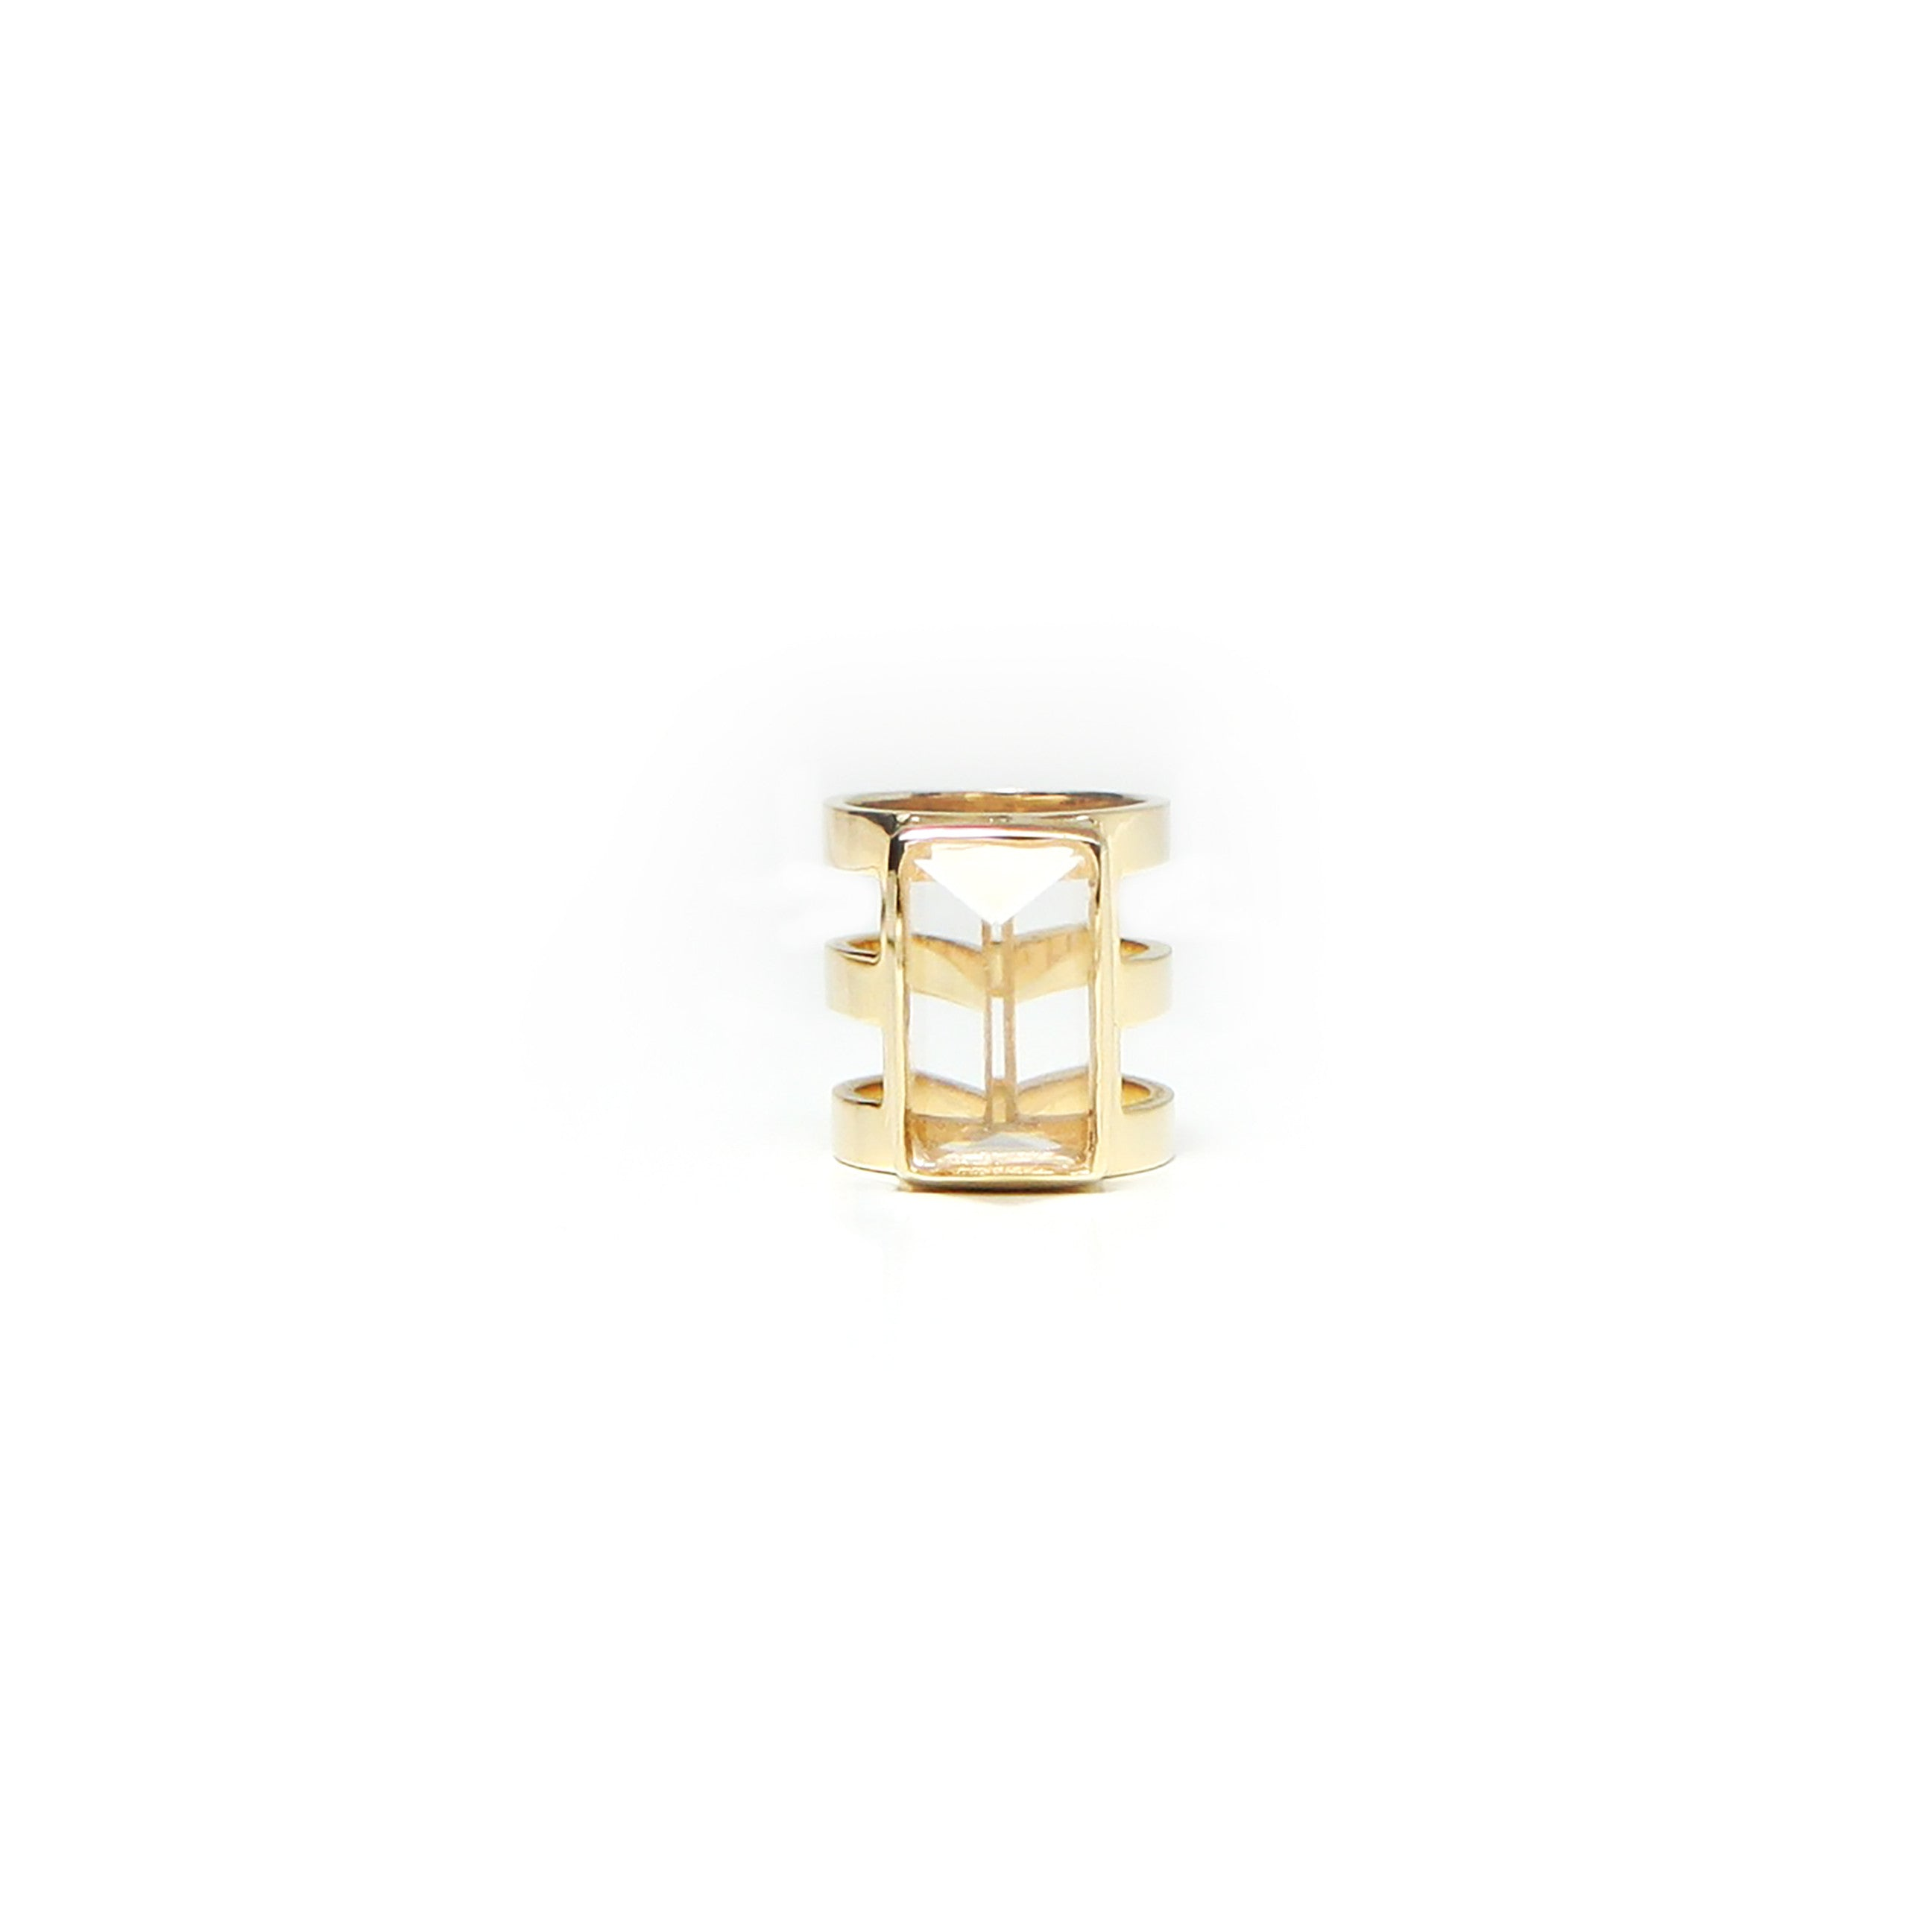 Paige Novick Glass Ring